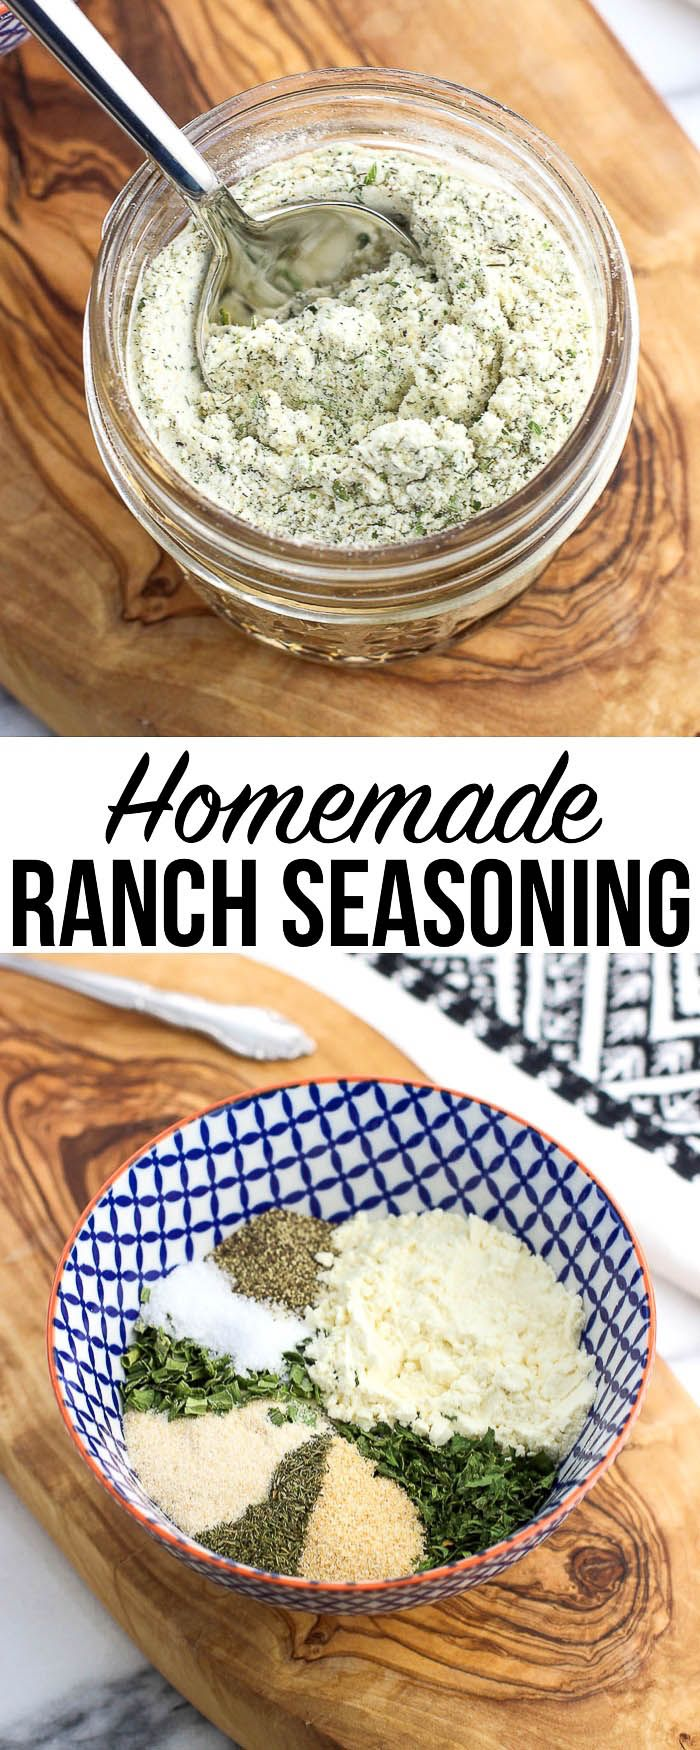 Ever Wonder How To Make Homemade Ranch Seasoning Dry Buttermilk Powder And Pantry Staple Herbs And Spi Homemade Ranch Seasoning Homemade Ranch Ranch Seasoning